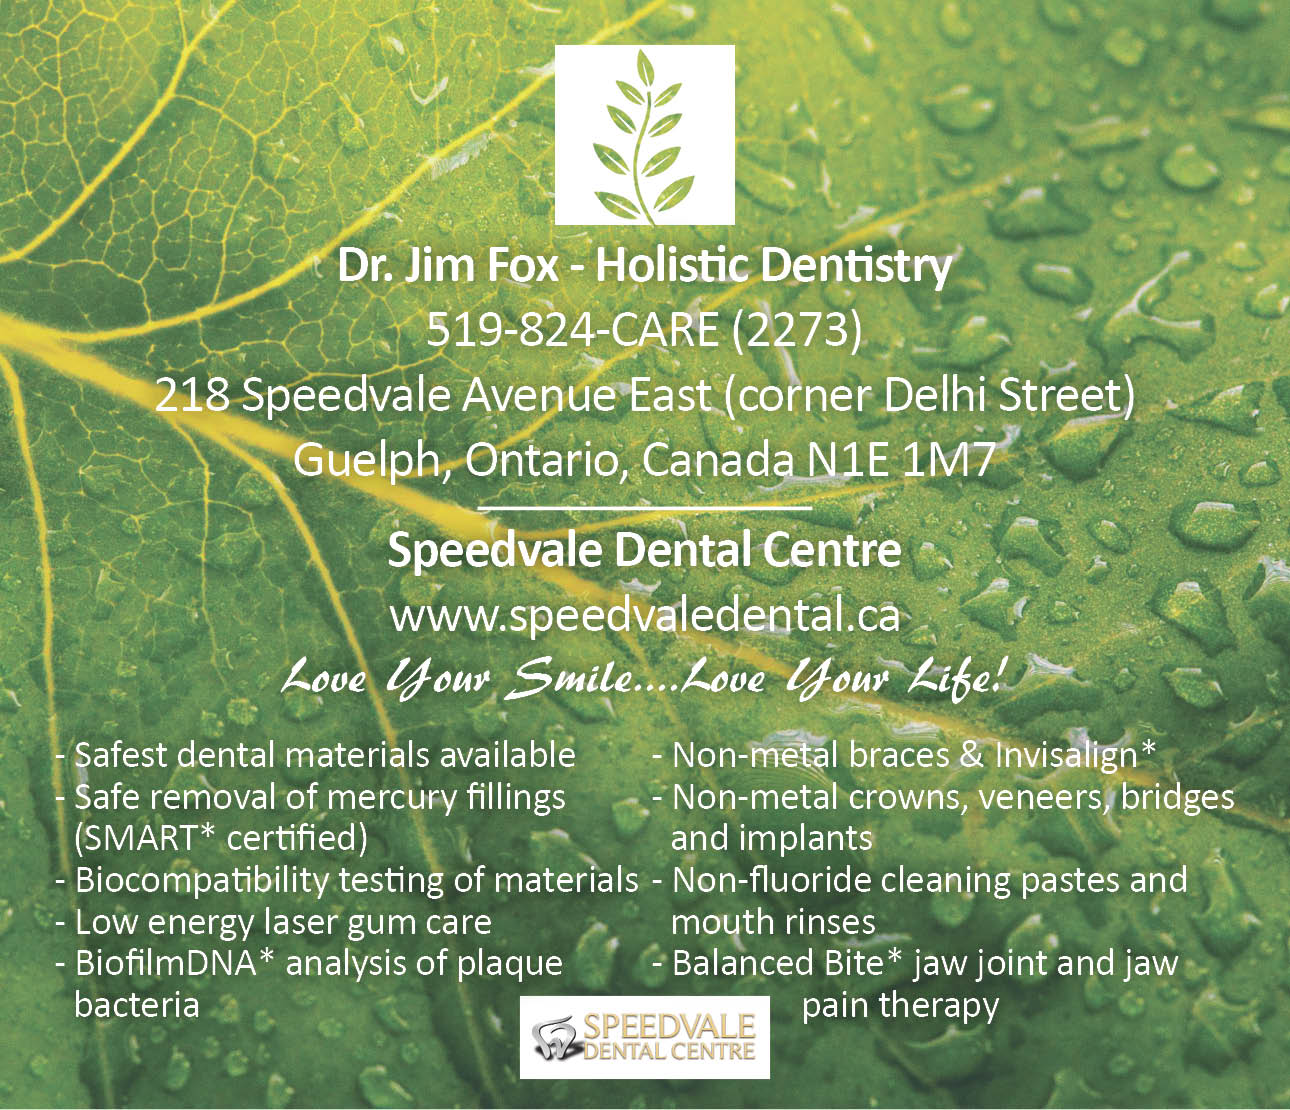 Speedvale_Dental_half_page_ad.jpg